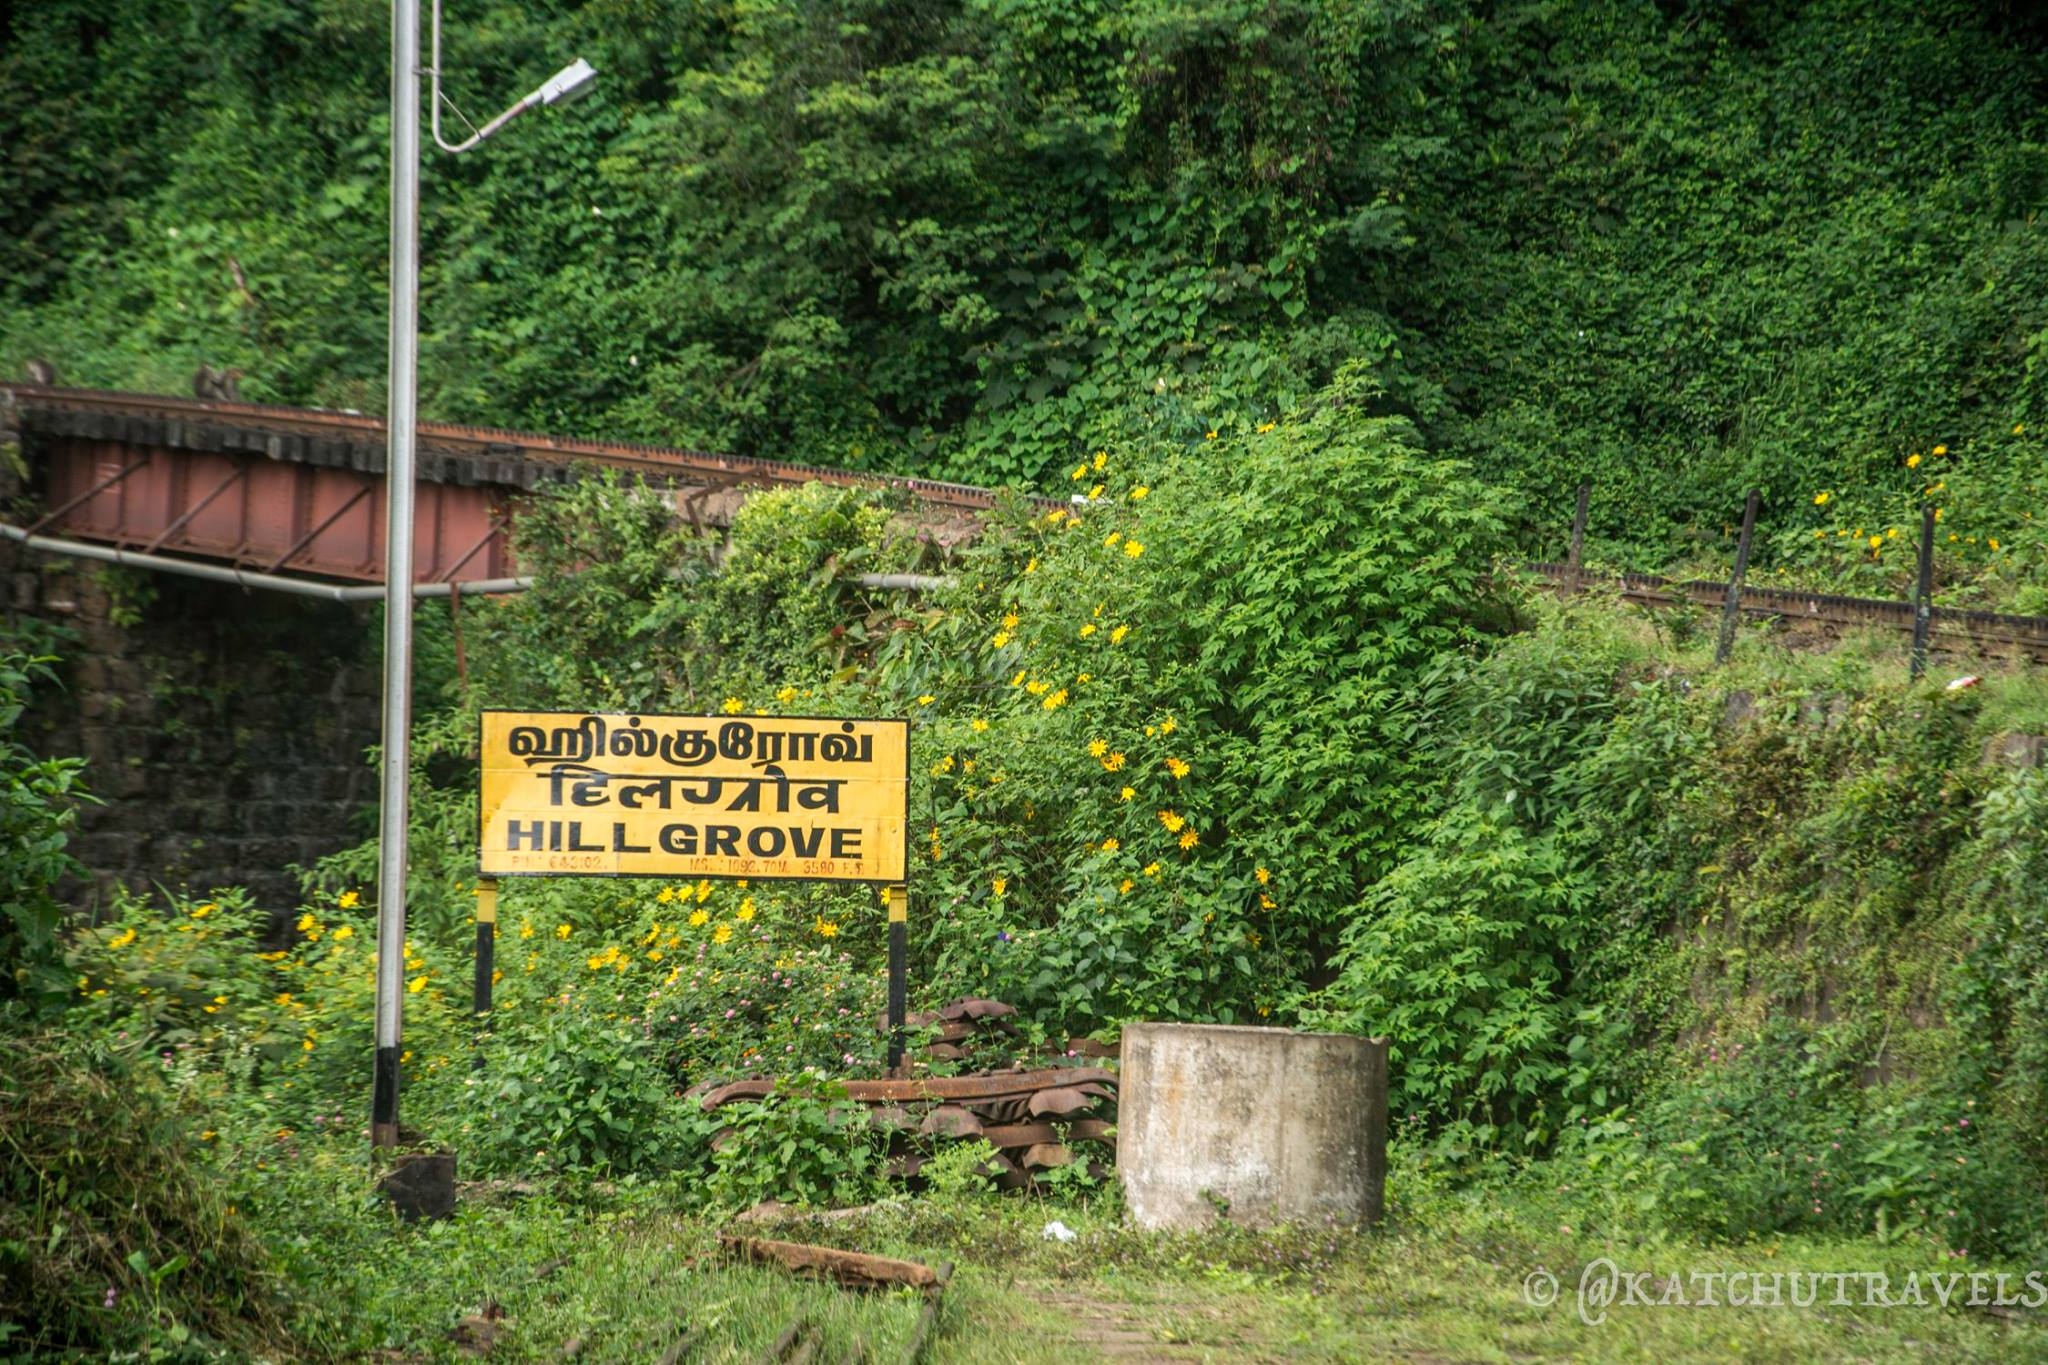 Hillgrove Railway Station on the Nilgiri Mountain Railway